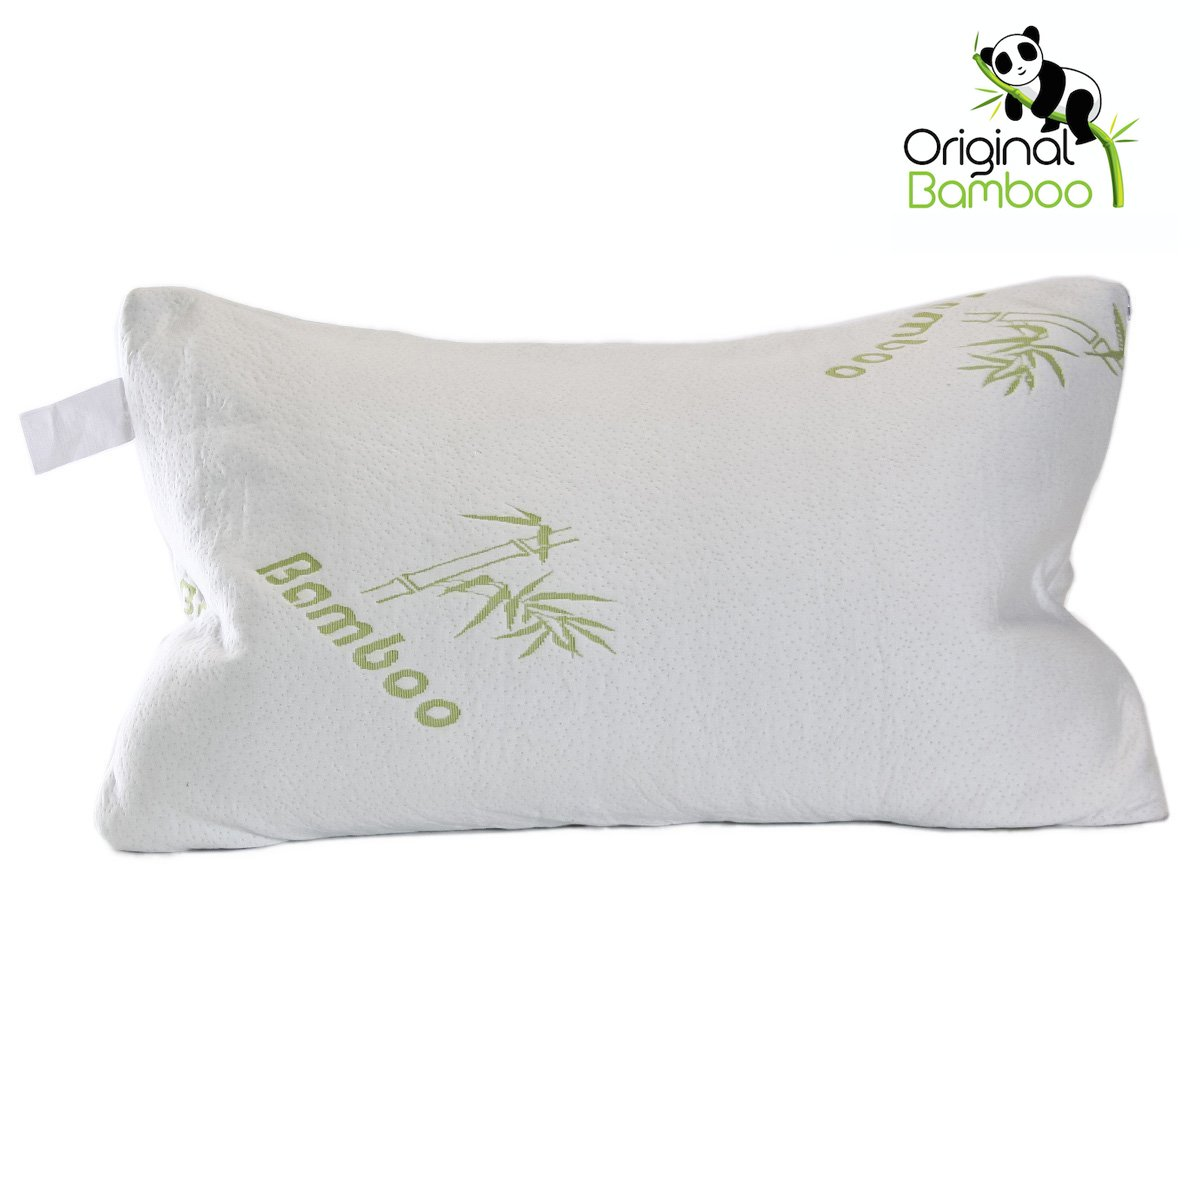 Original Shredded Bamboo Pillow with Ever-Cool Adaptive Technology